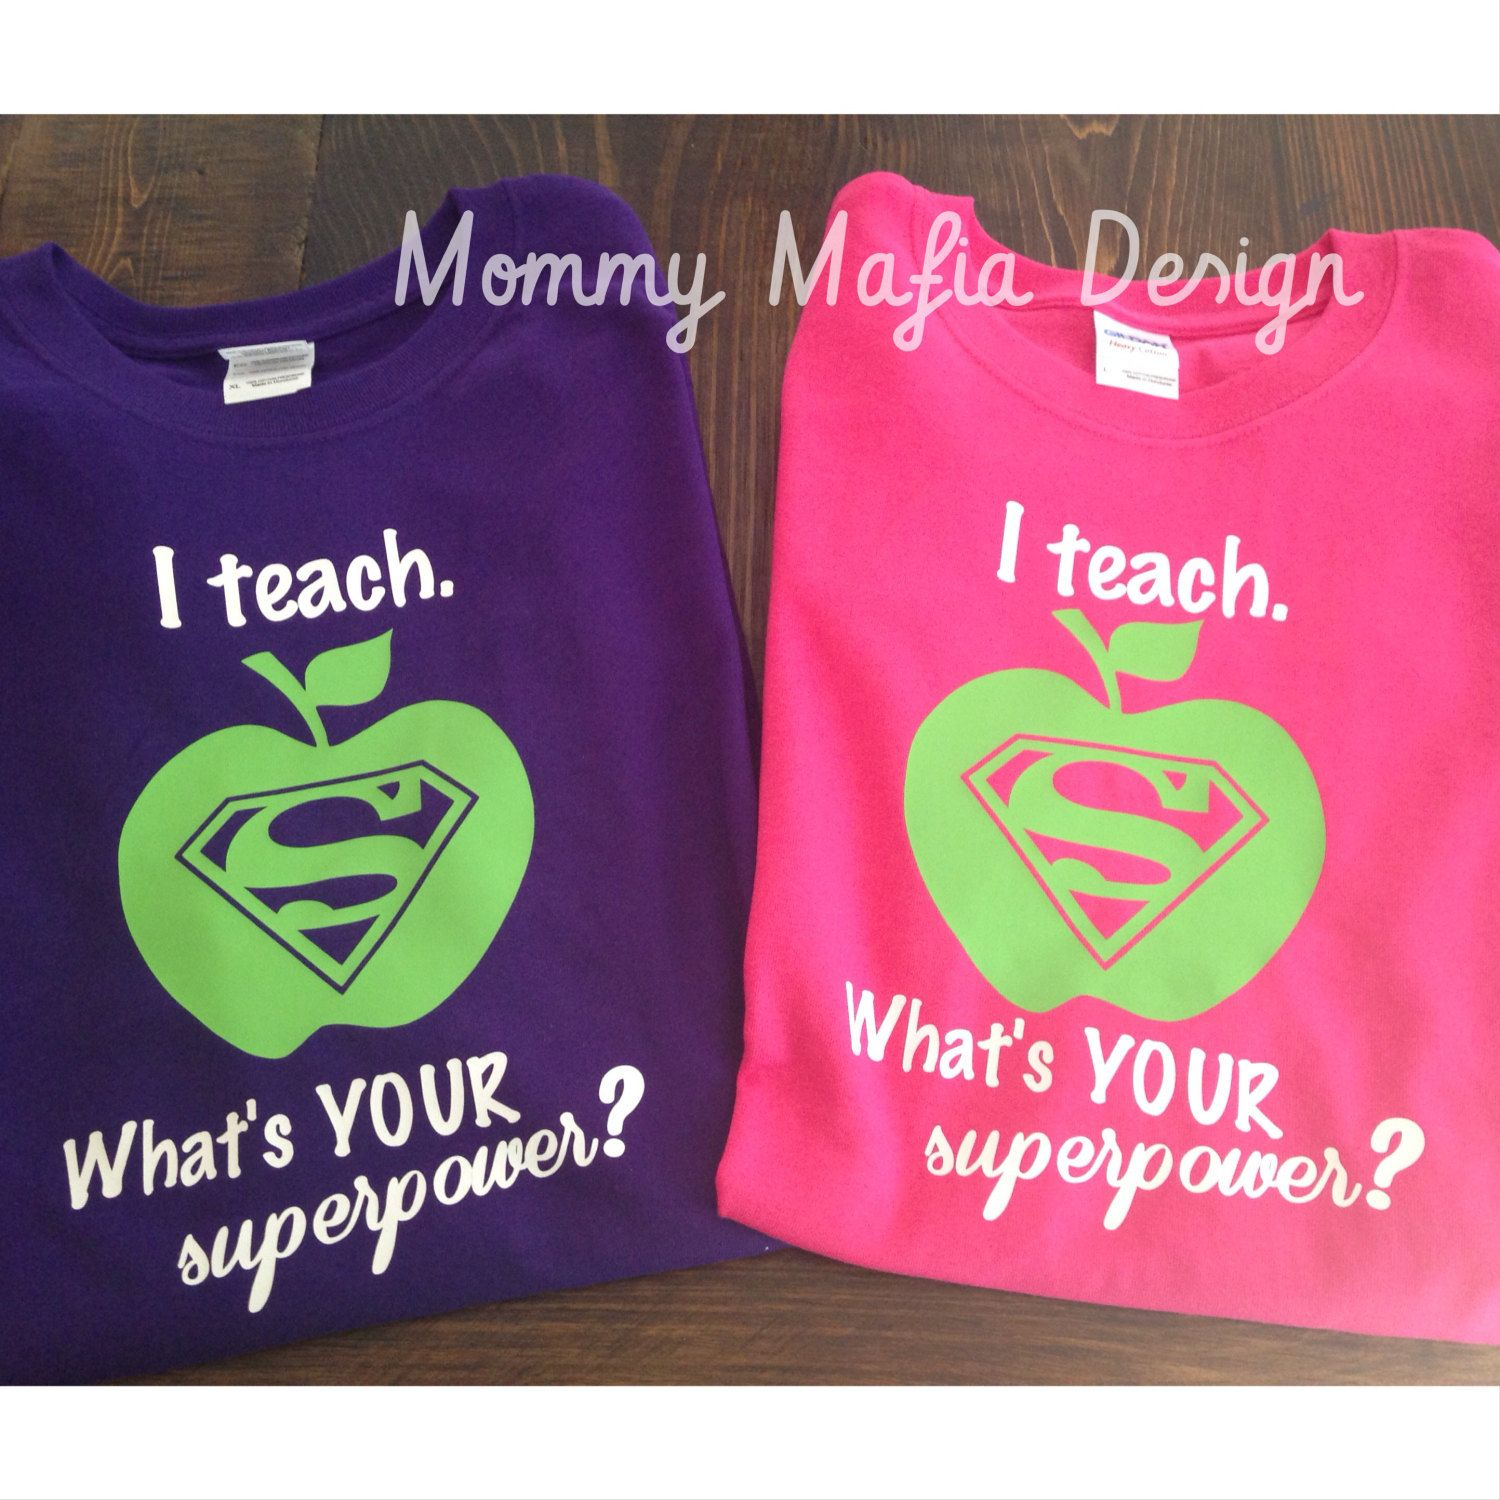 School shirt design your own - Shop Over Funny T Shirts Design Your Own Shirt As Unique As You Are T Shirt Design Screen Printing Dtg Shirt Printing Satisfaction Guaranteed